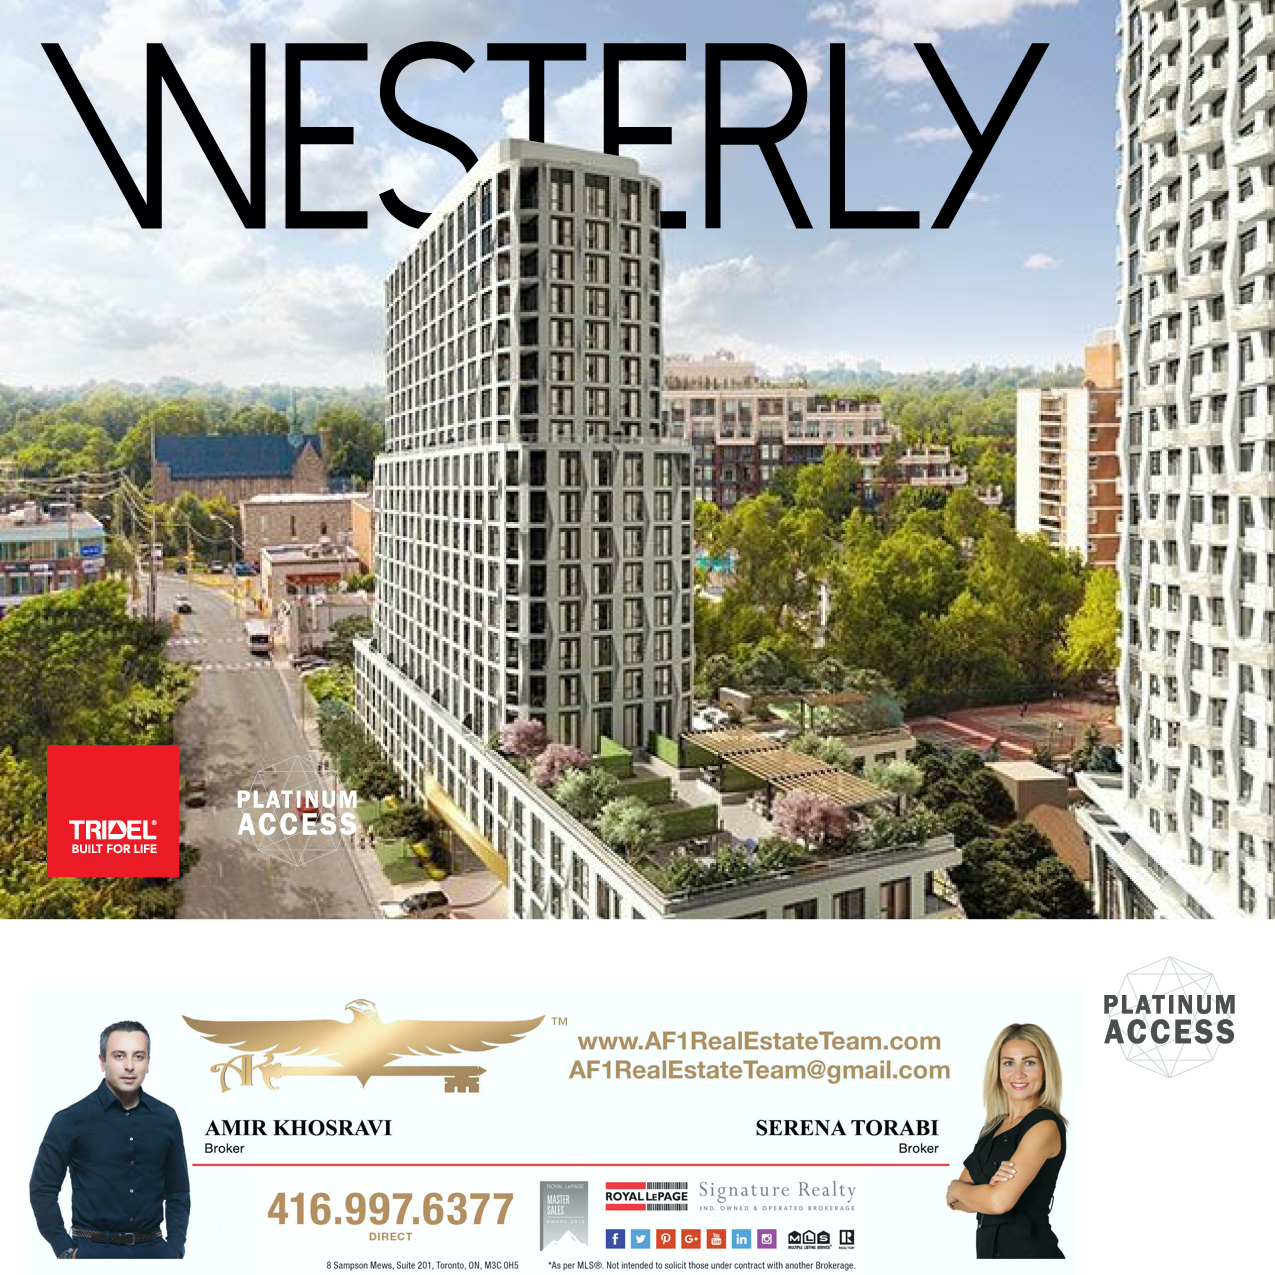 Westertly